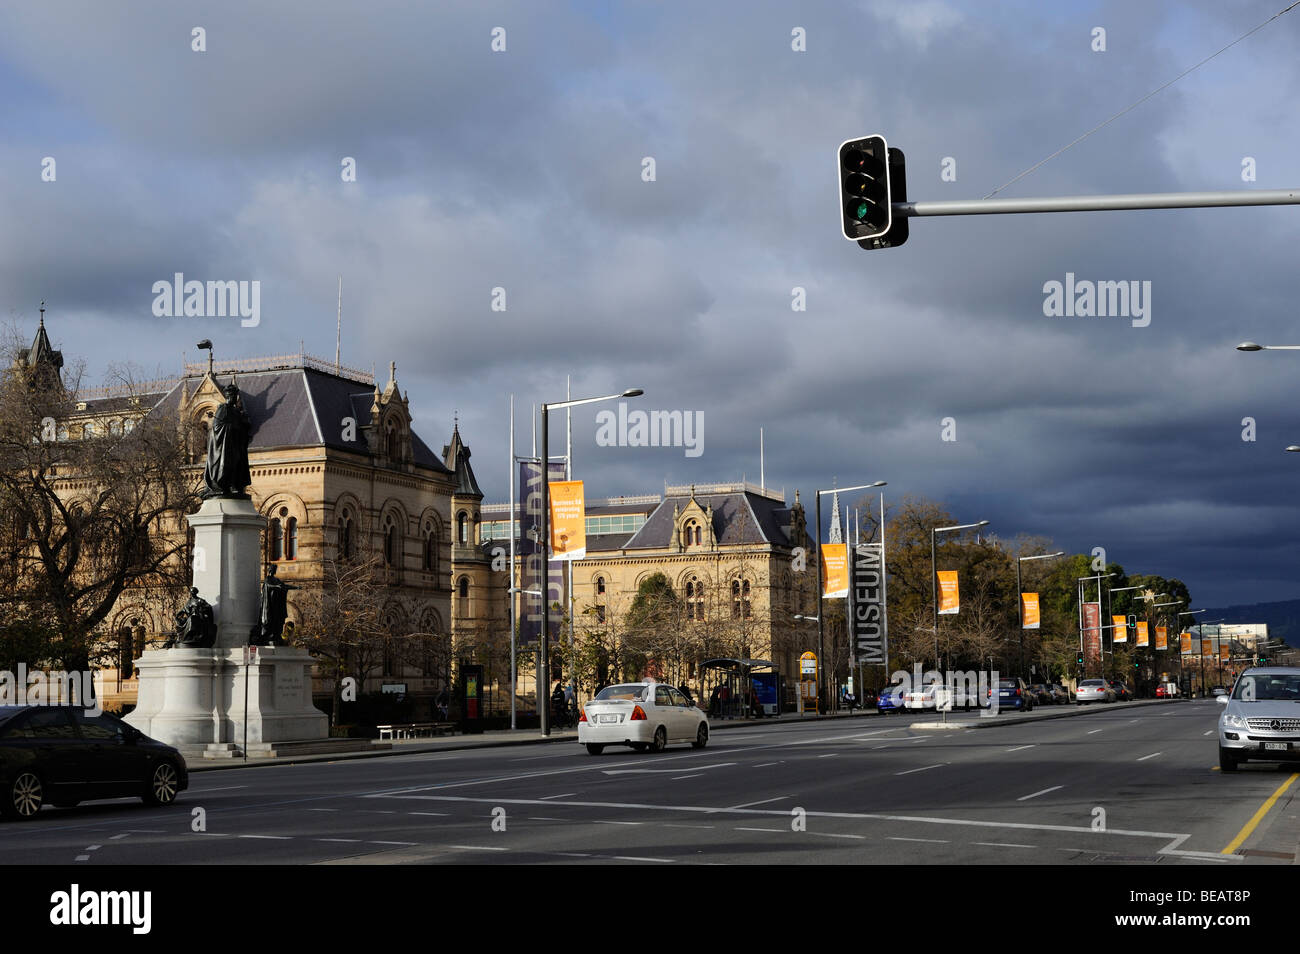 A view of North Terrace, Adelaide. The streets are wide and spacious and there are a lot of classically-styled buildings. - Stock Image